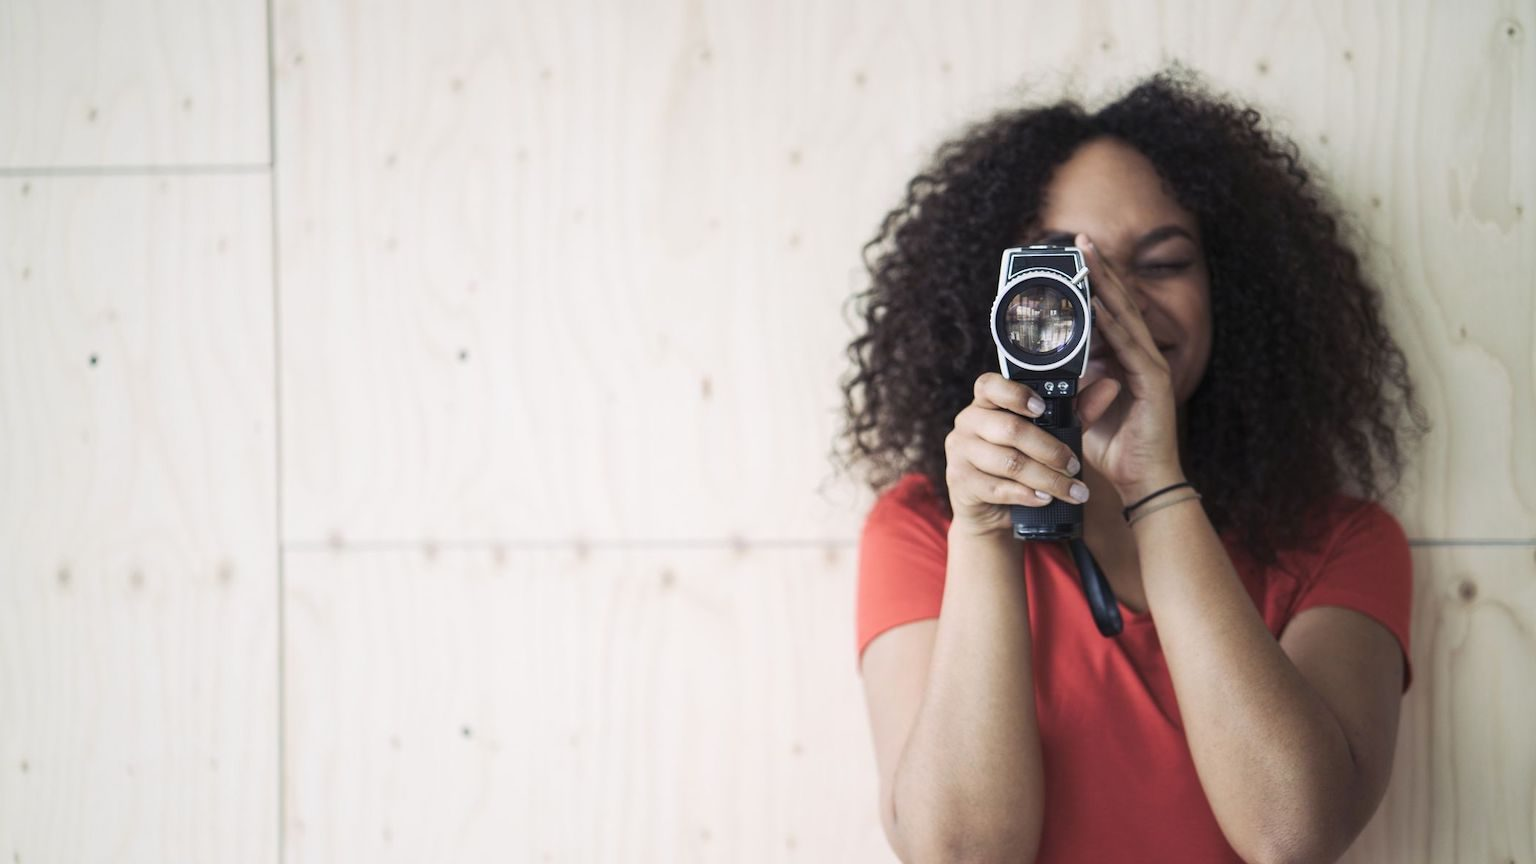 A young woman holding a vintage video camera